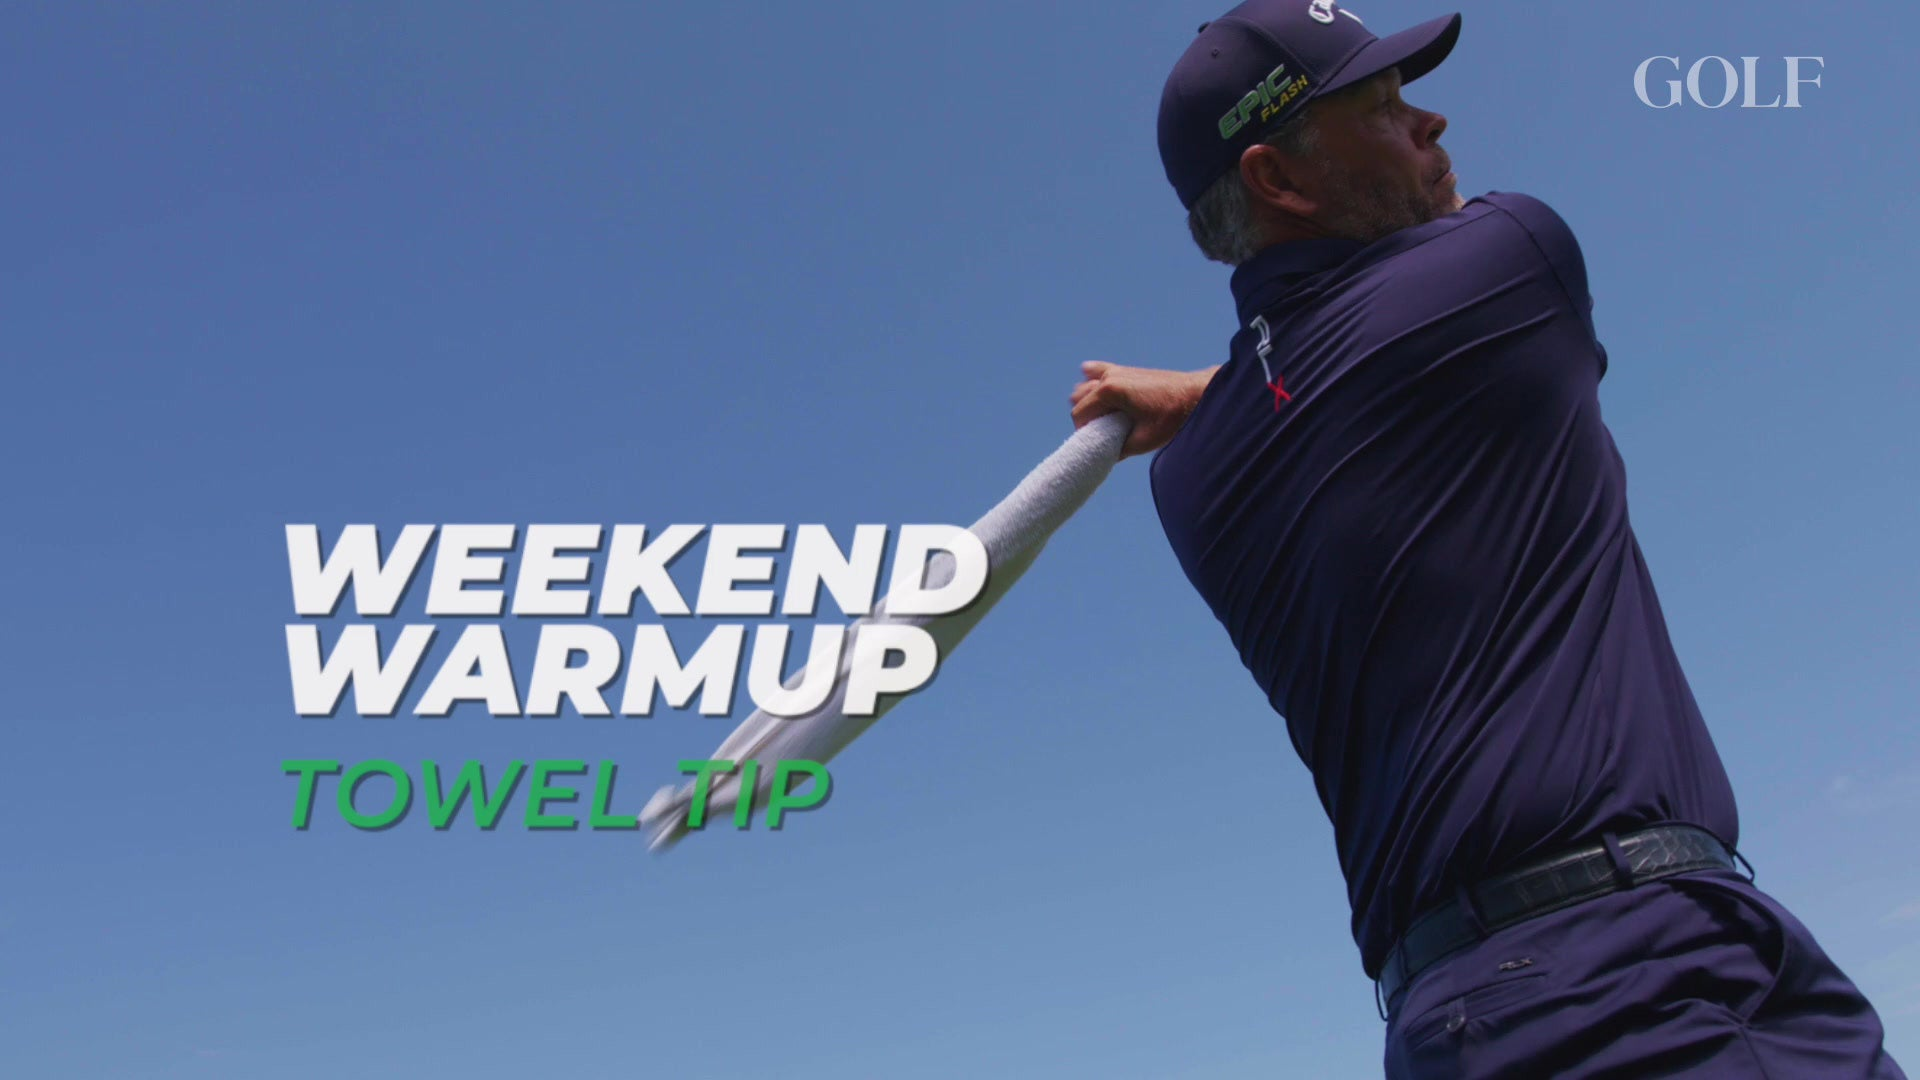 Weekend Warmup: Towel Tip to find swing faults